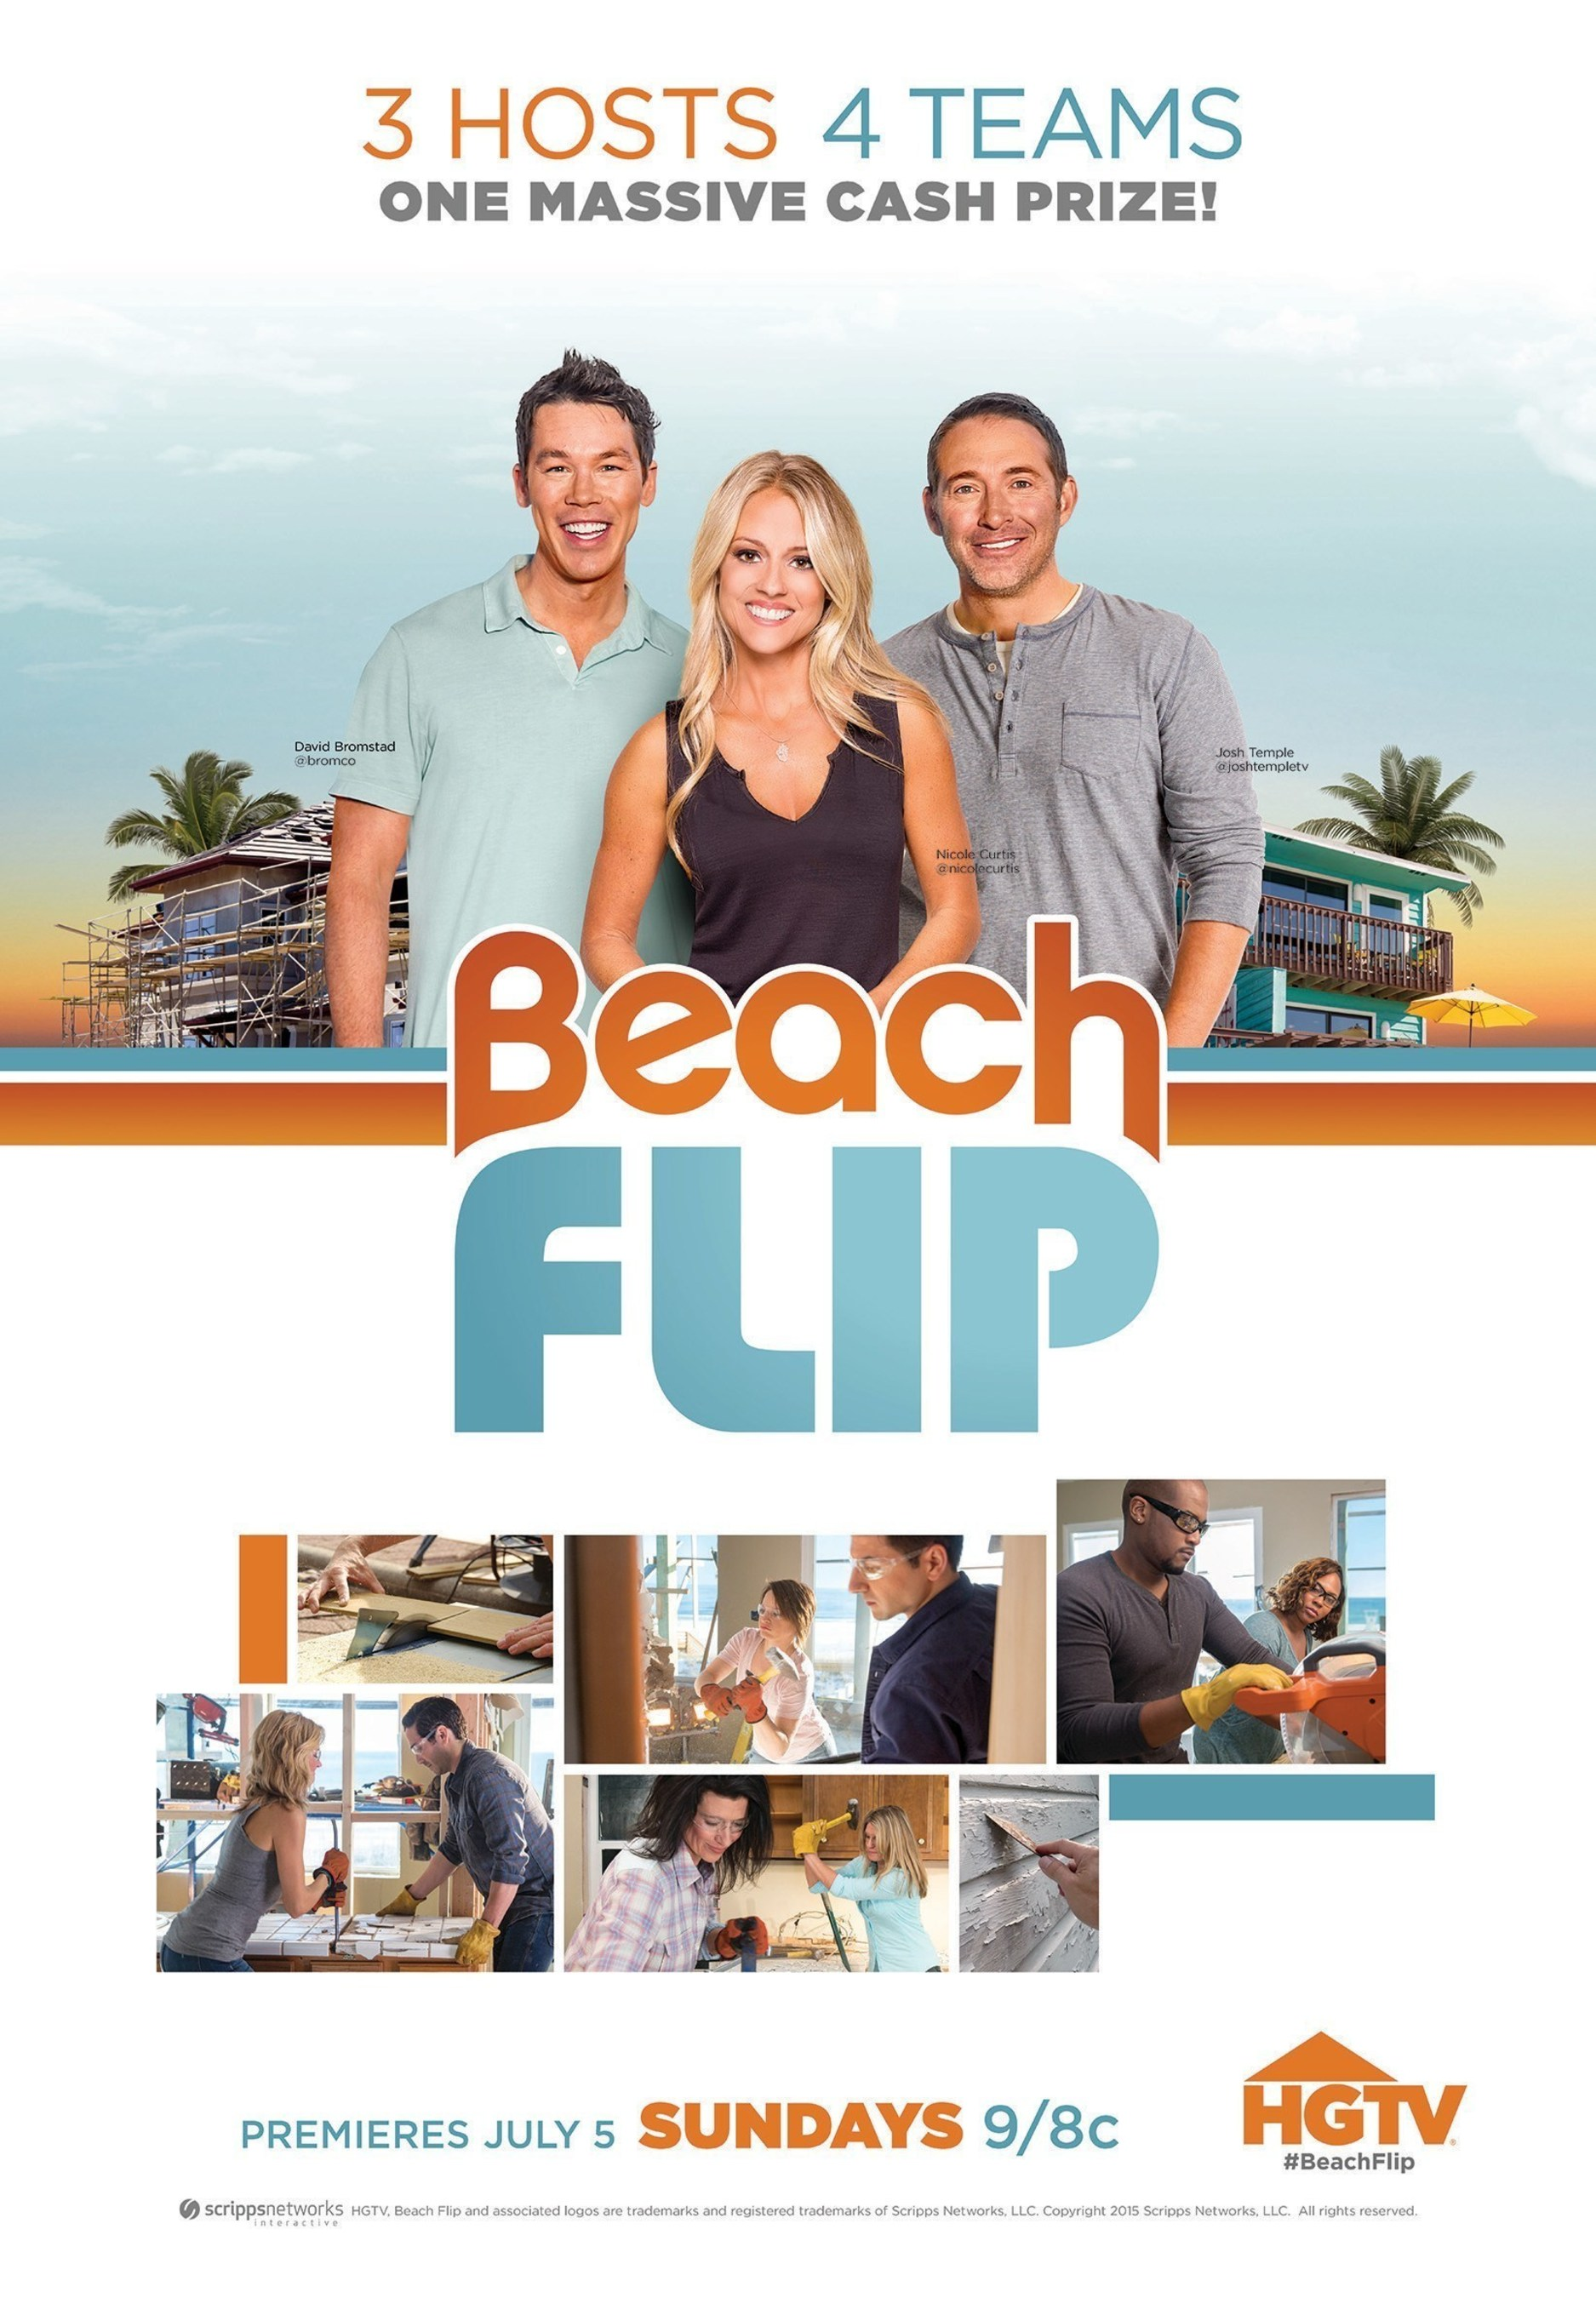 HGTV's Hot New Renovation Competition Series 'Beach Flip' Debuts July 5